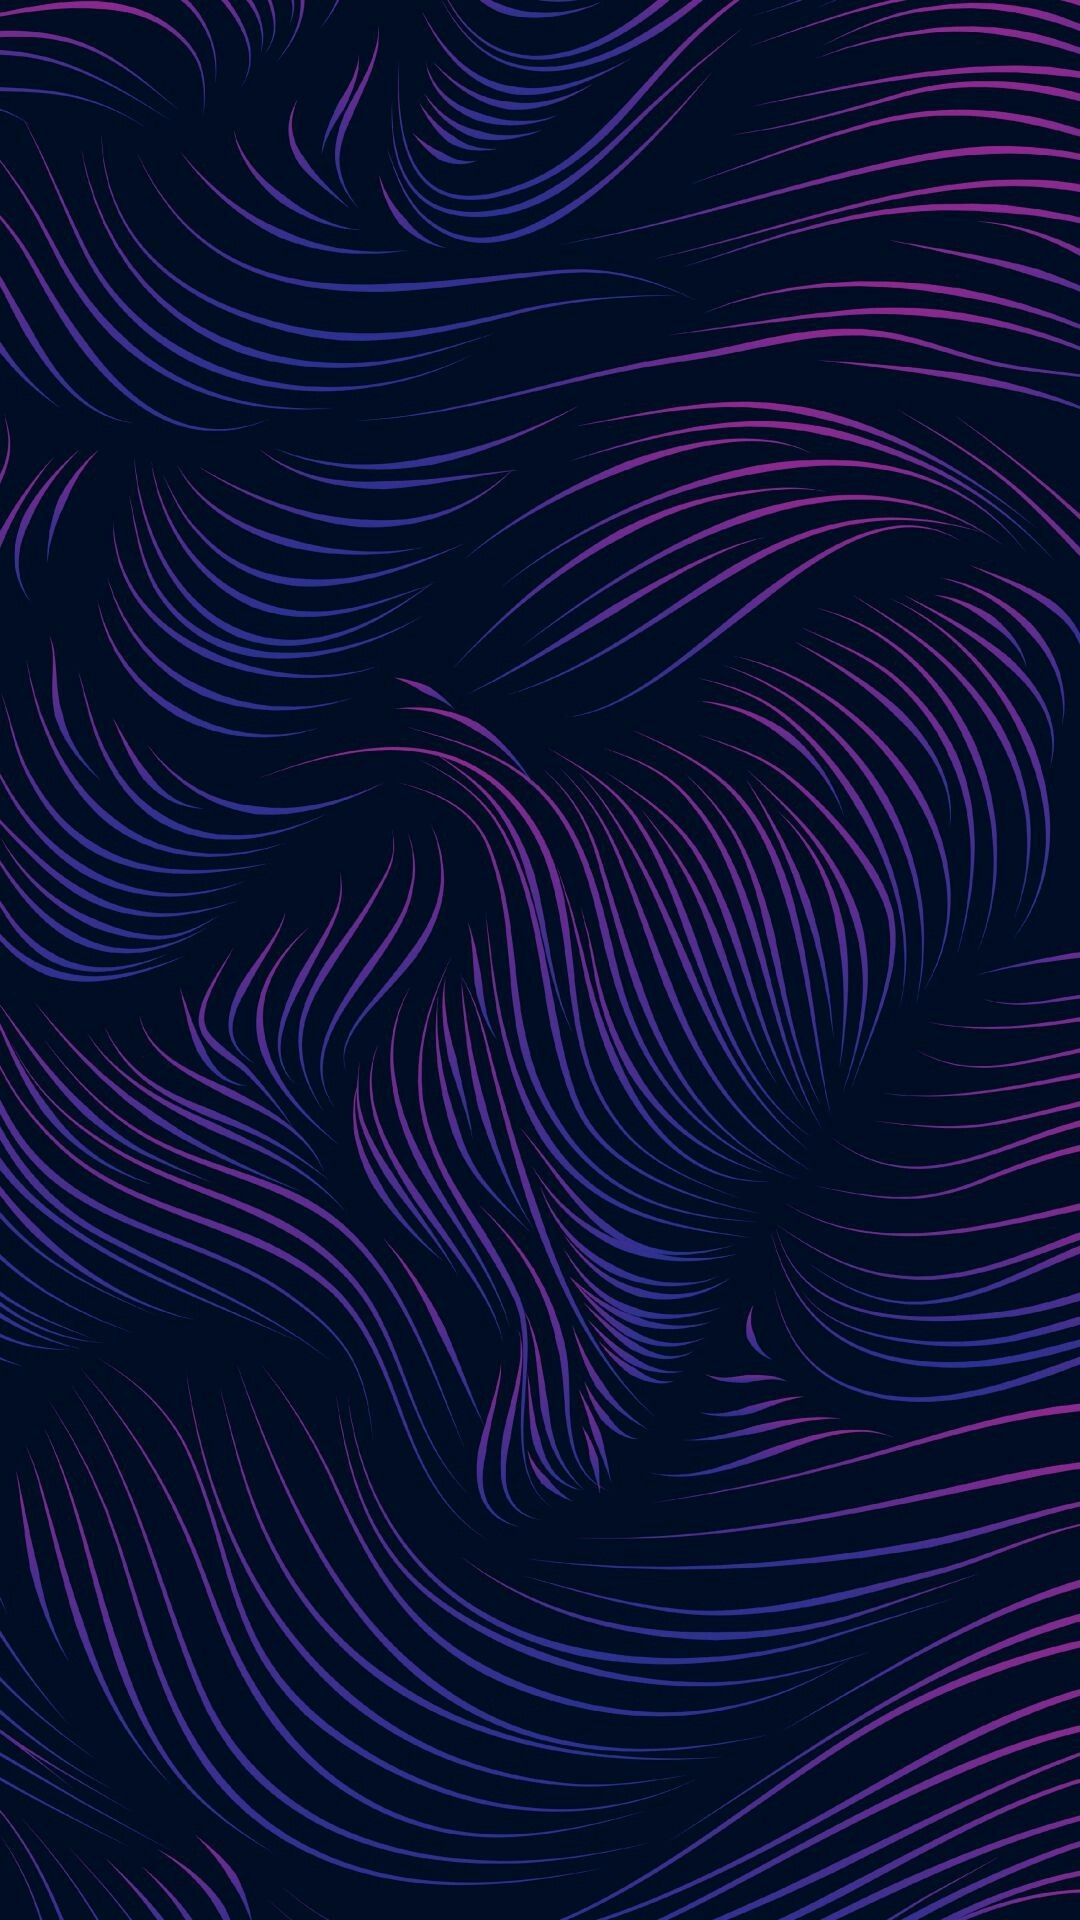 Iphone Wallpaper Background Purple Pink Swirl Dark